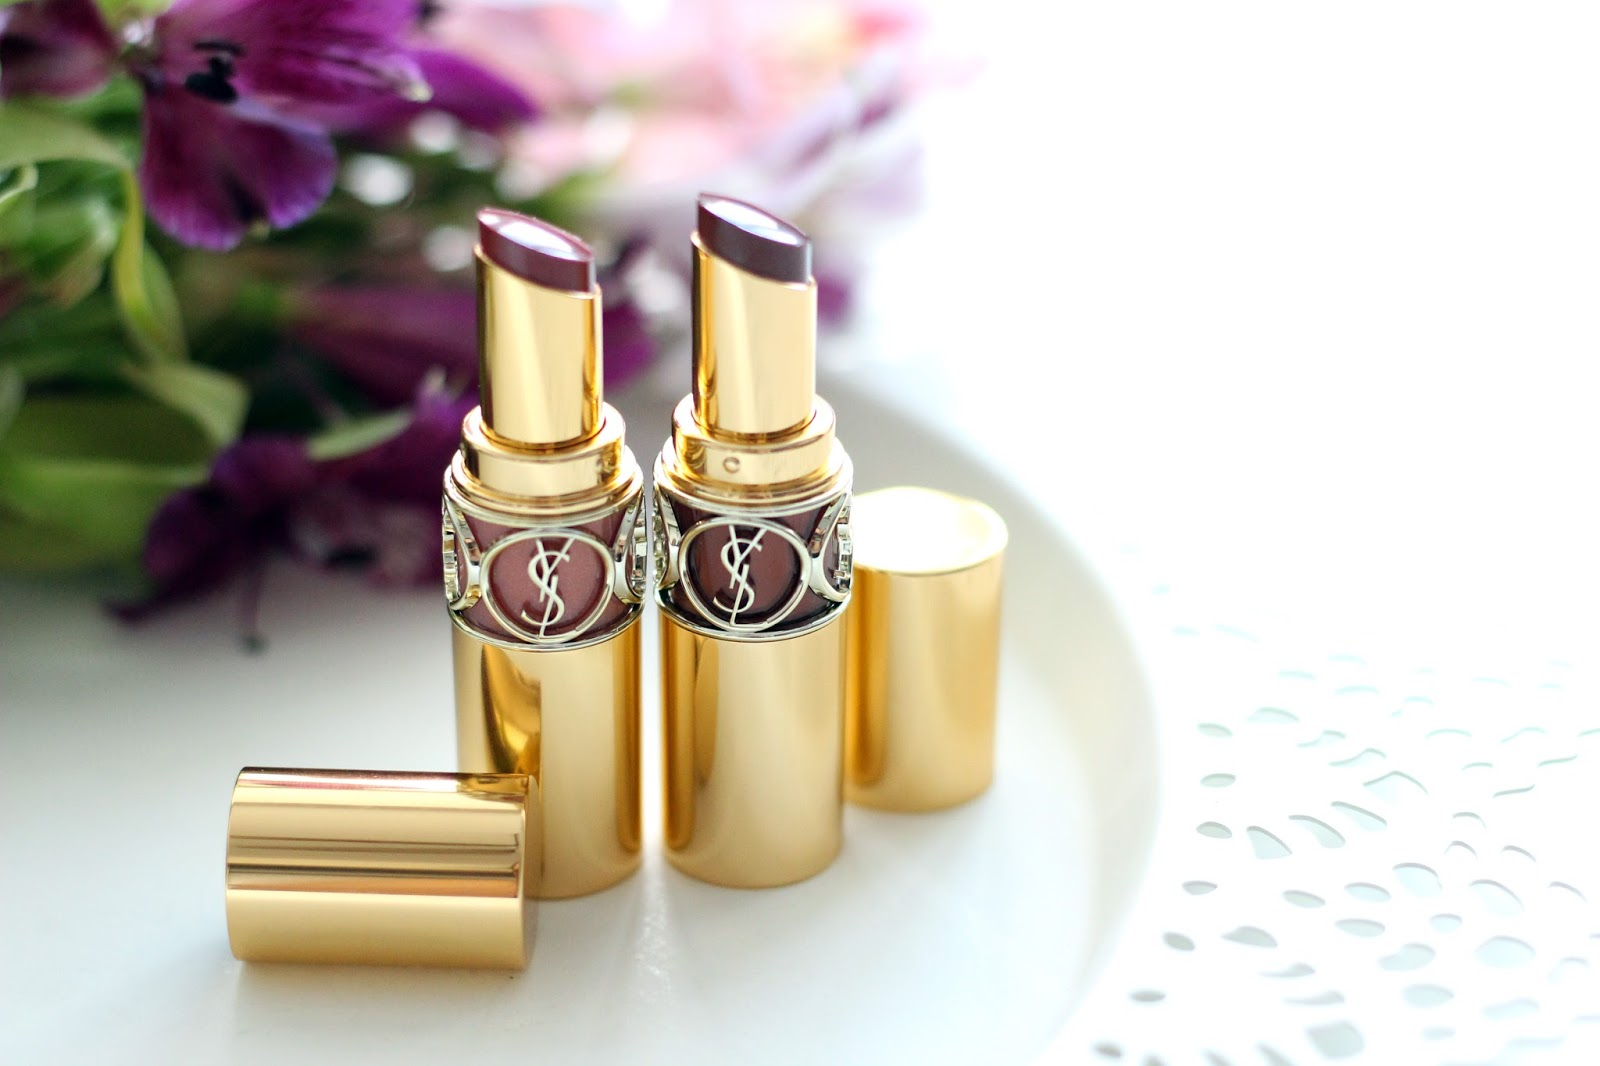 ysl yves saint laurent volupte shine lipstick review by bulgarian beauty blog quite a looker www.quitealooker.com